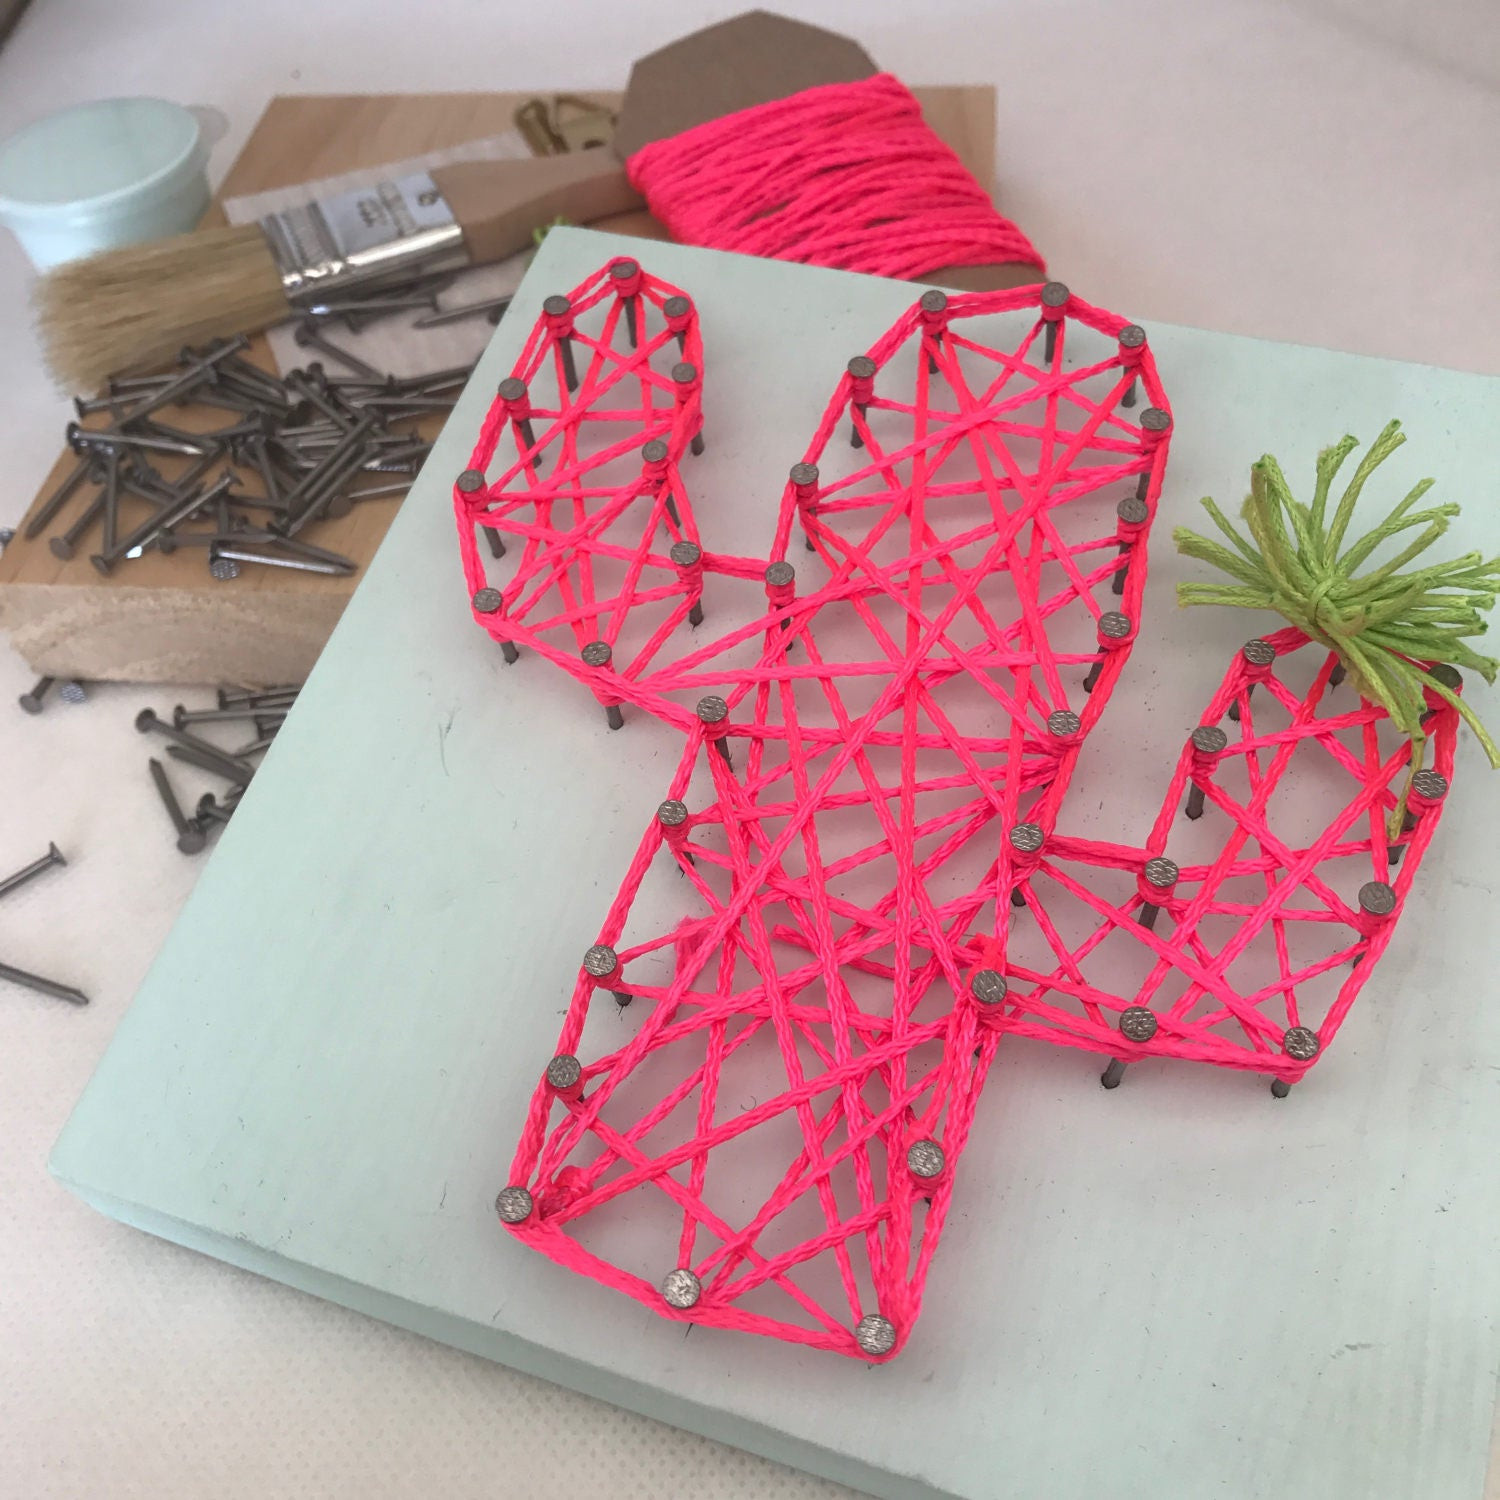 DIY Kits For Adults  DIY String Art Kit Craft Kit Gift for Adults Gift for